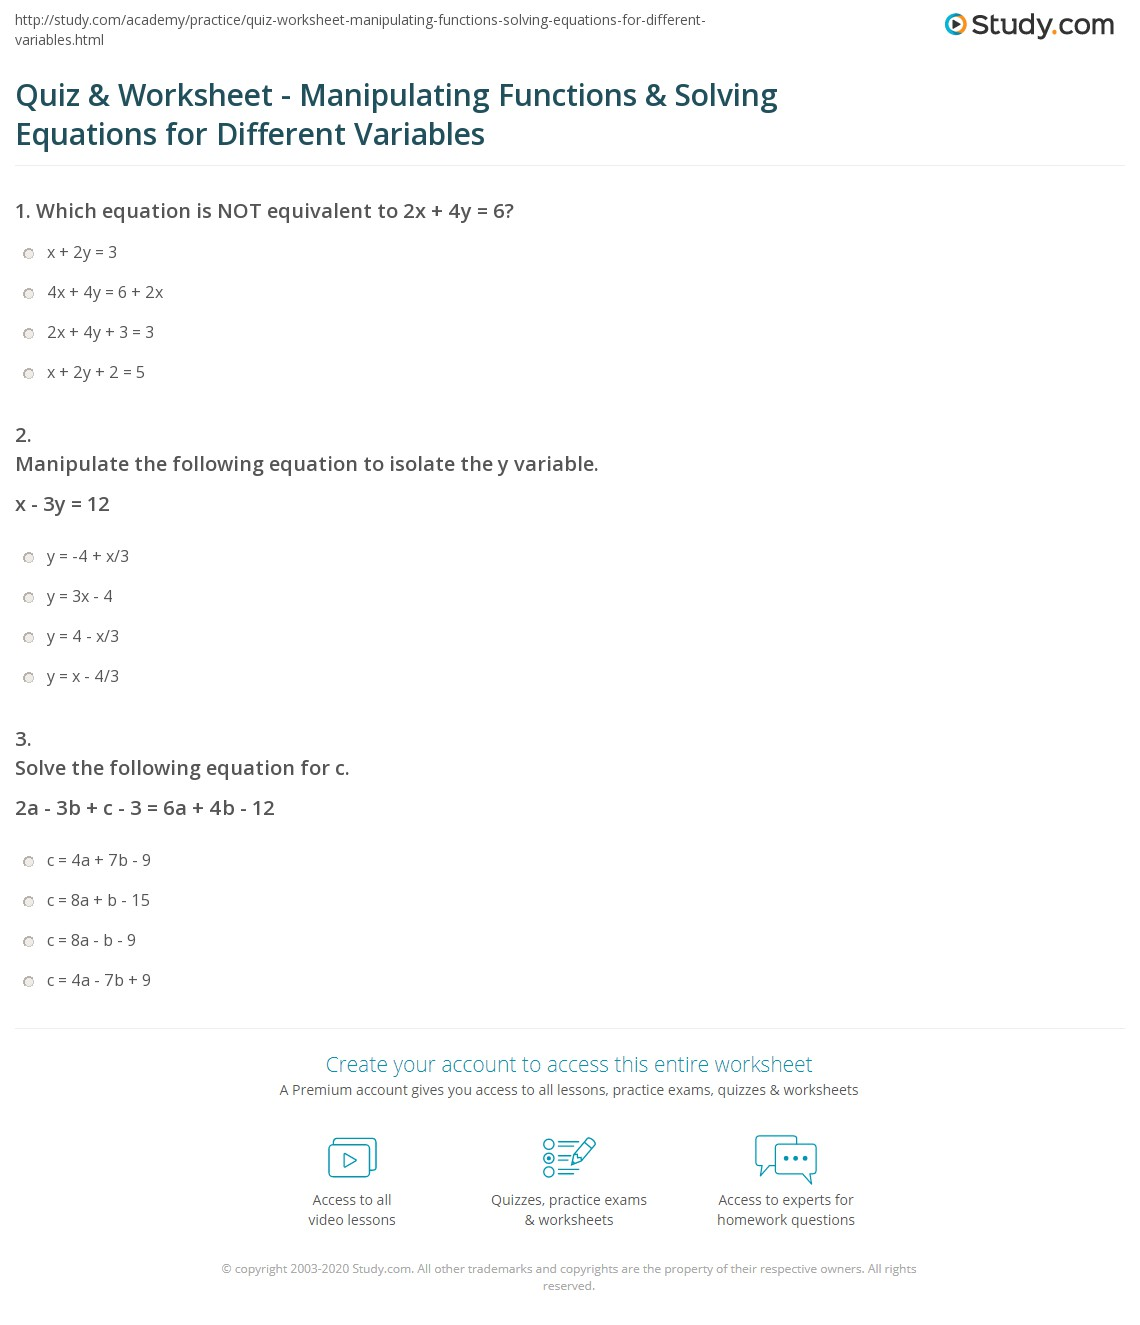 Practice 3 Equations With Variables On Both Sides Worksheet